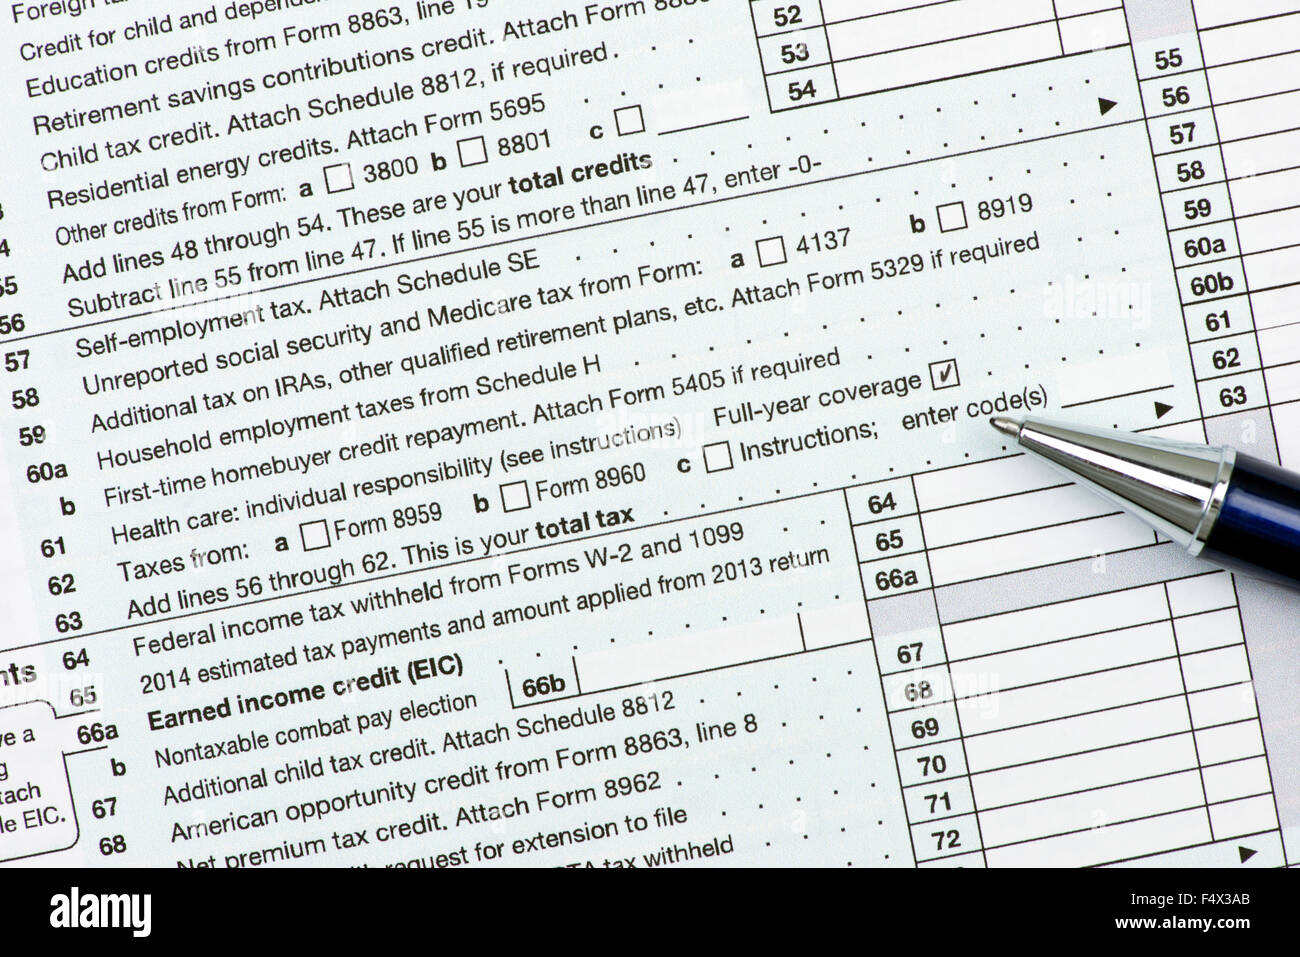 form 1040 health care coverage  Tax Form 16 Stock Photos & Tax Form 16 Stock Images - Alamy